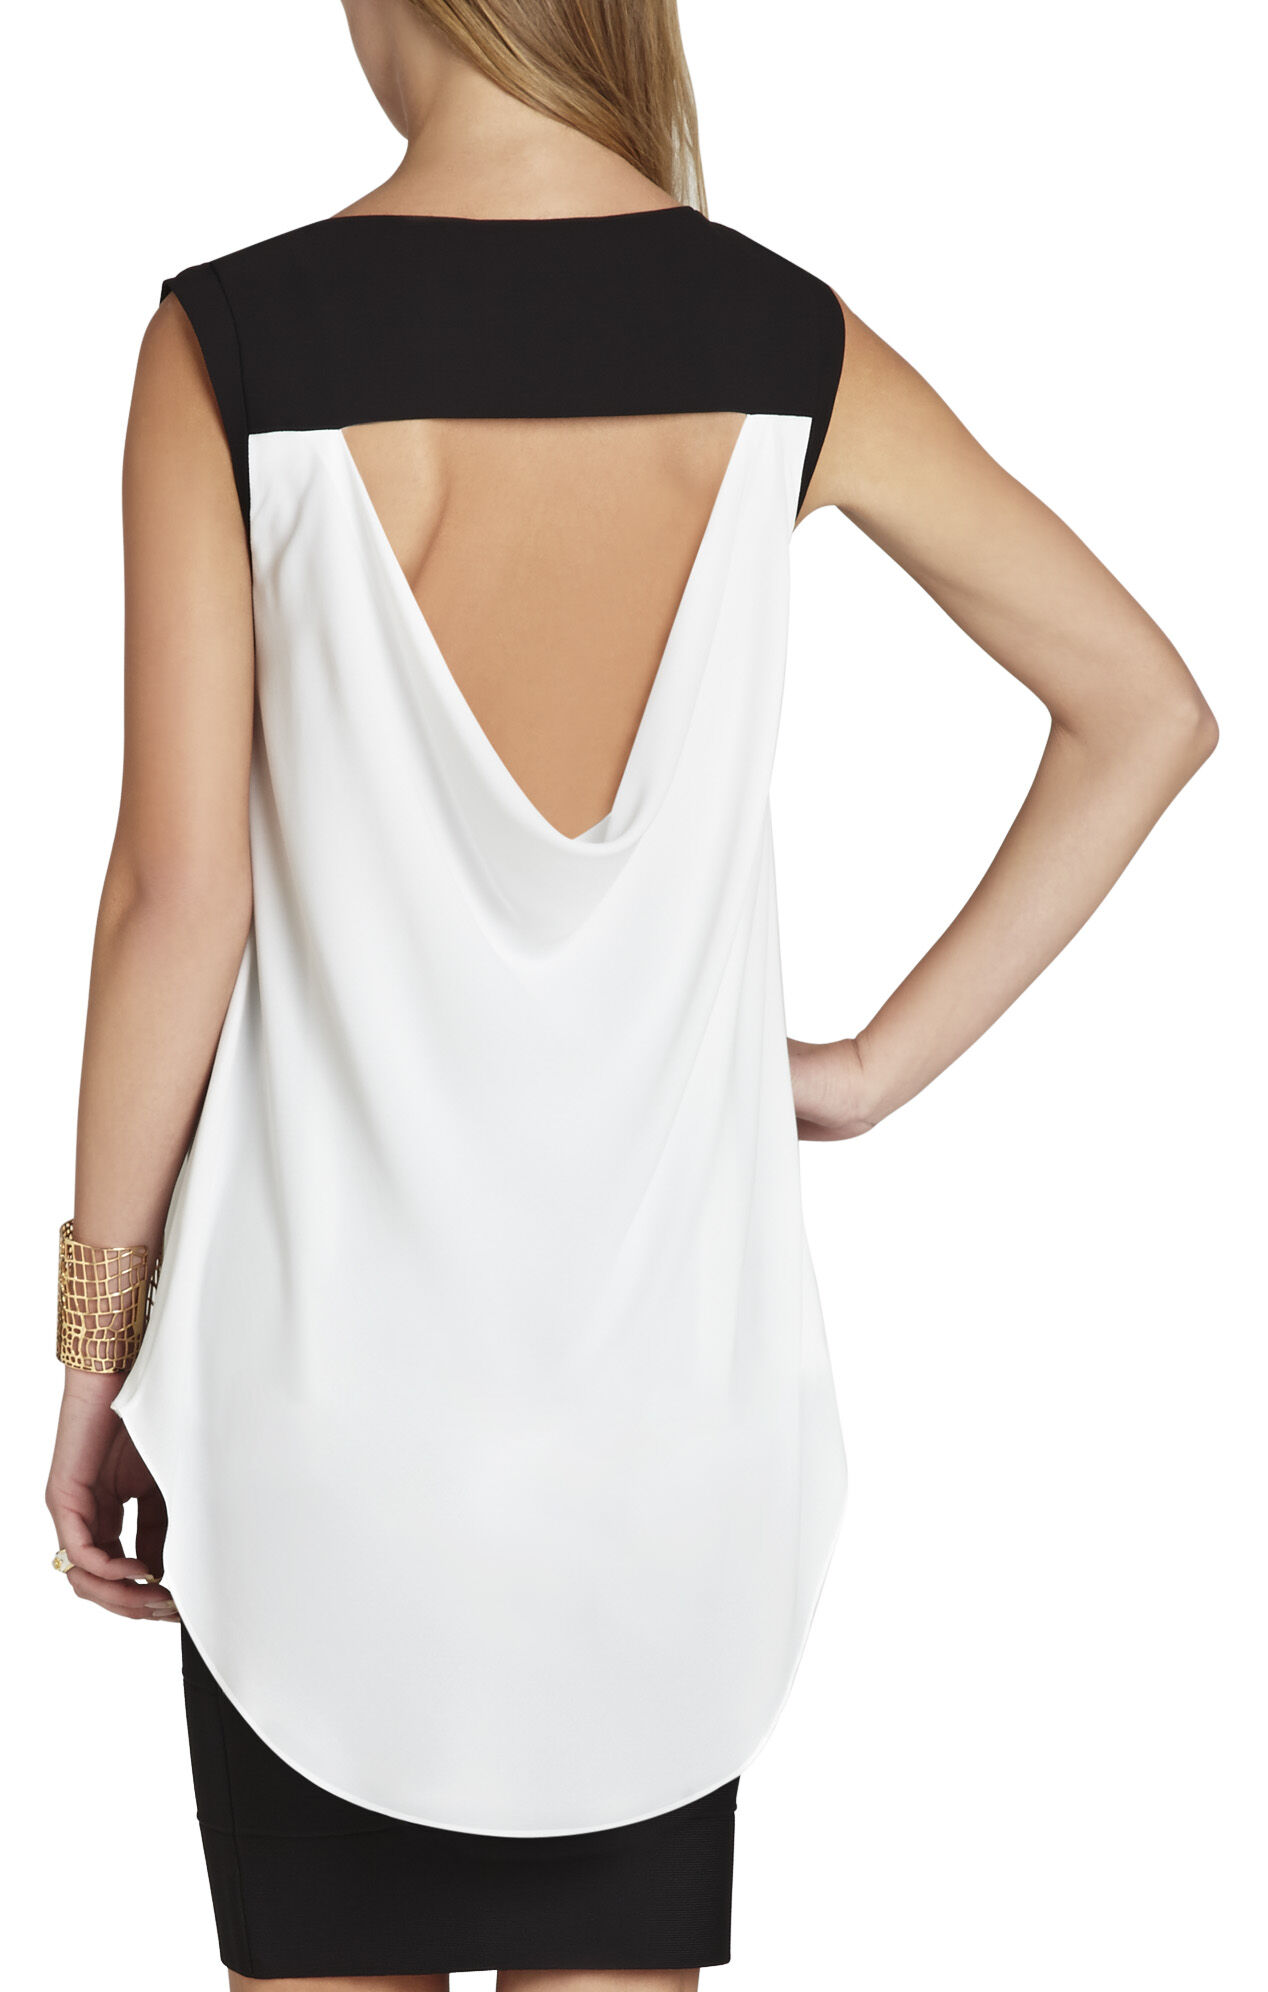 Uosa Sleeveless Asymmetrical Top